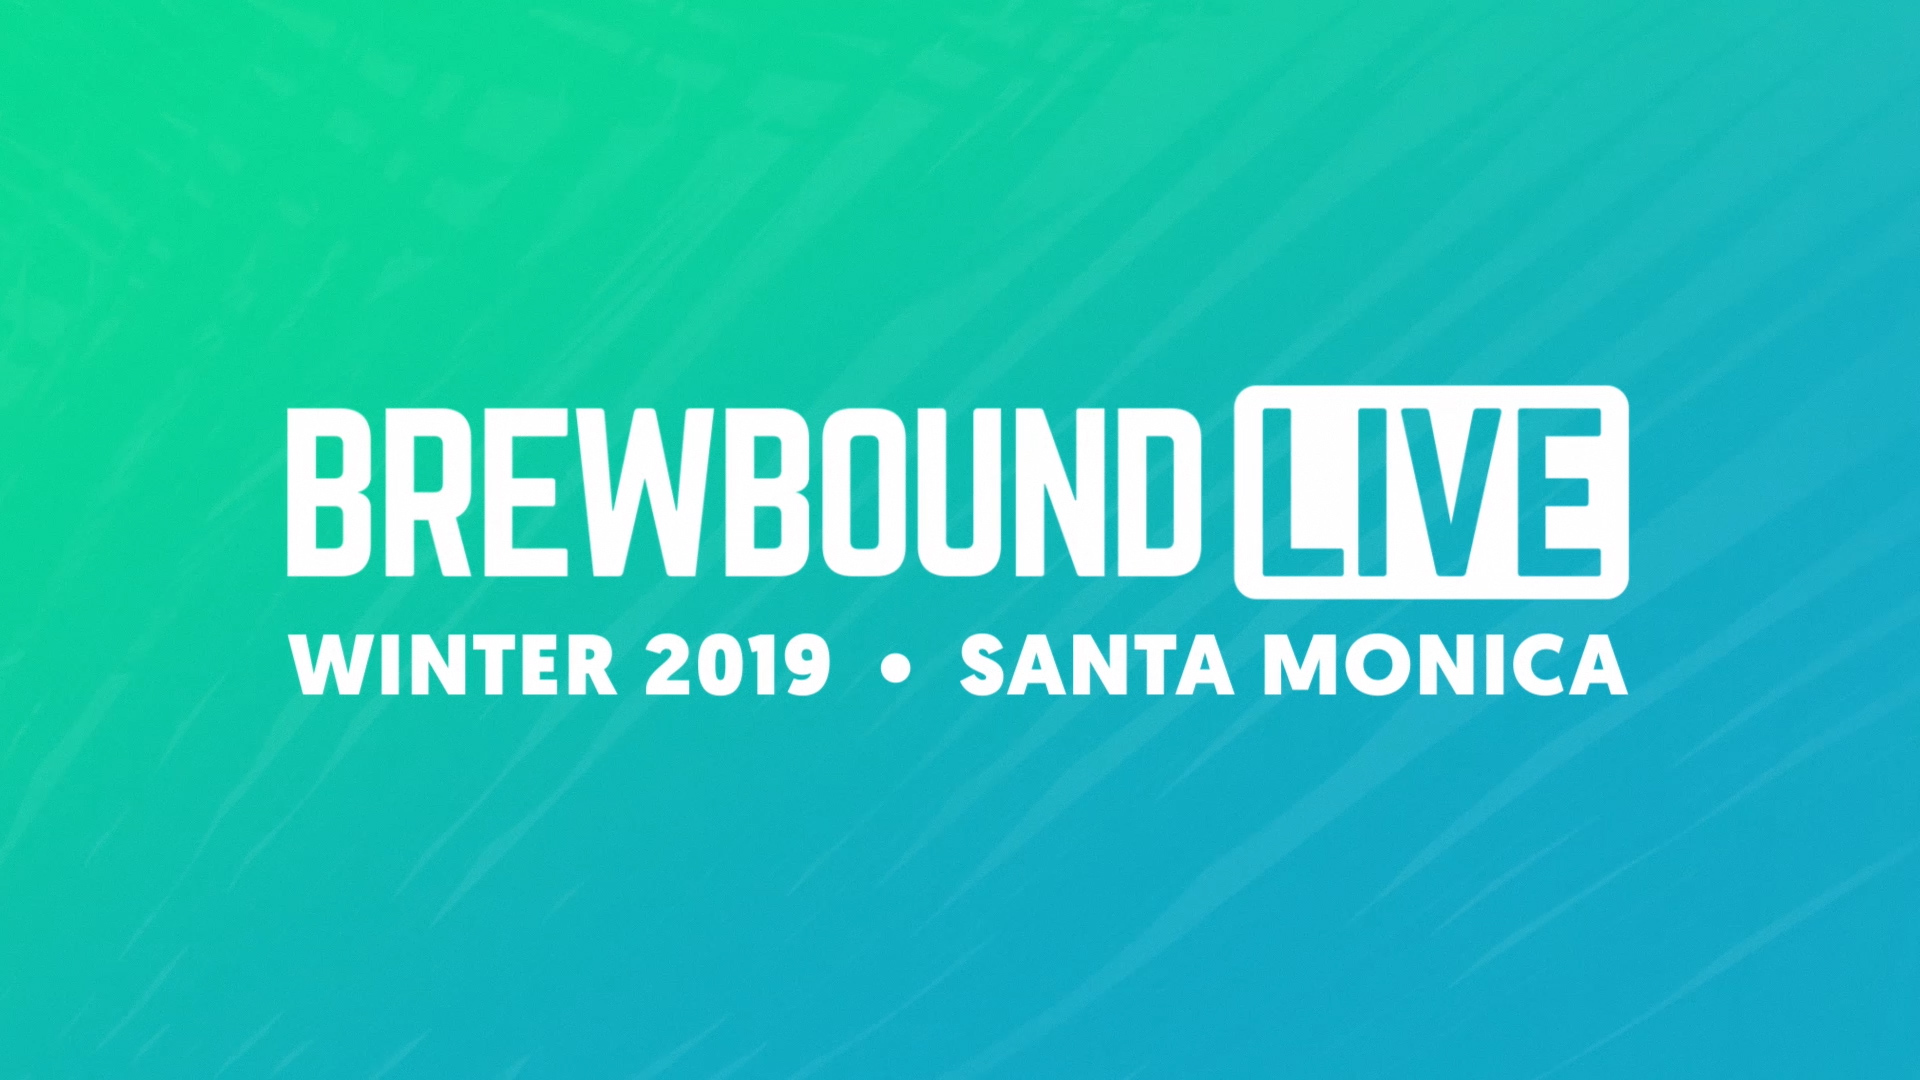 Brewbound...Live Winter 2019